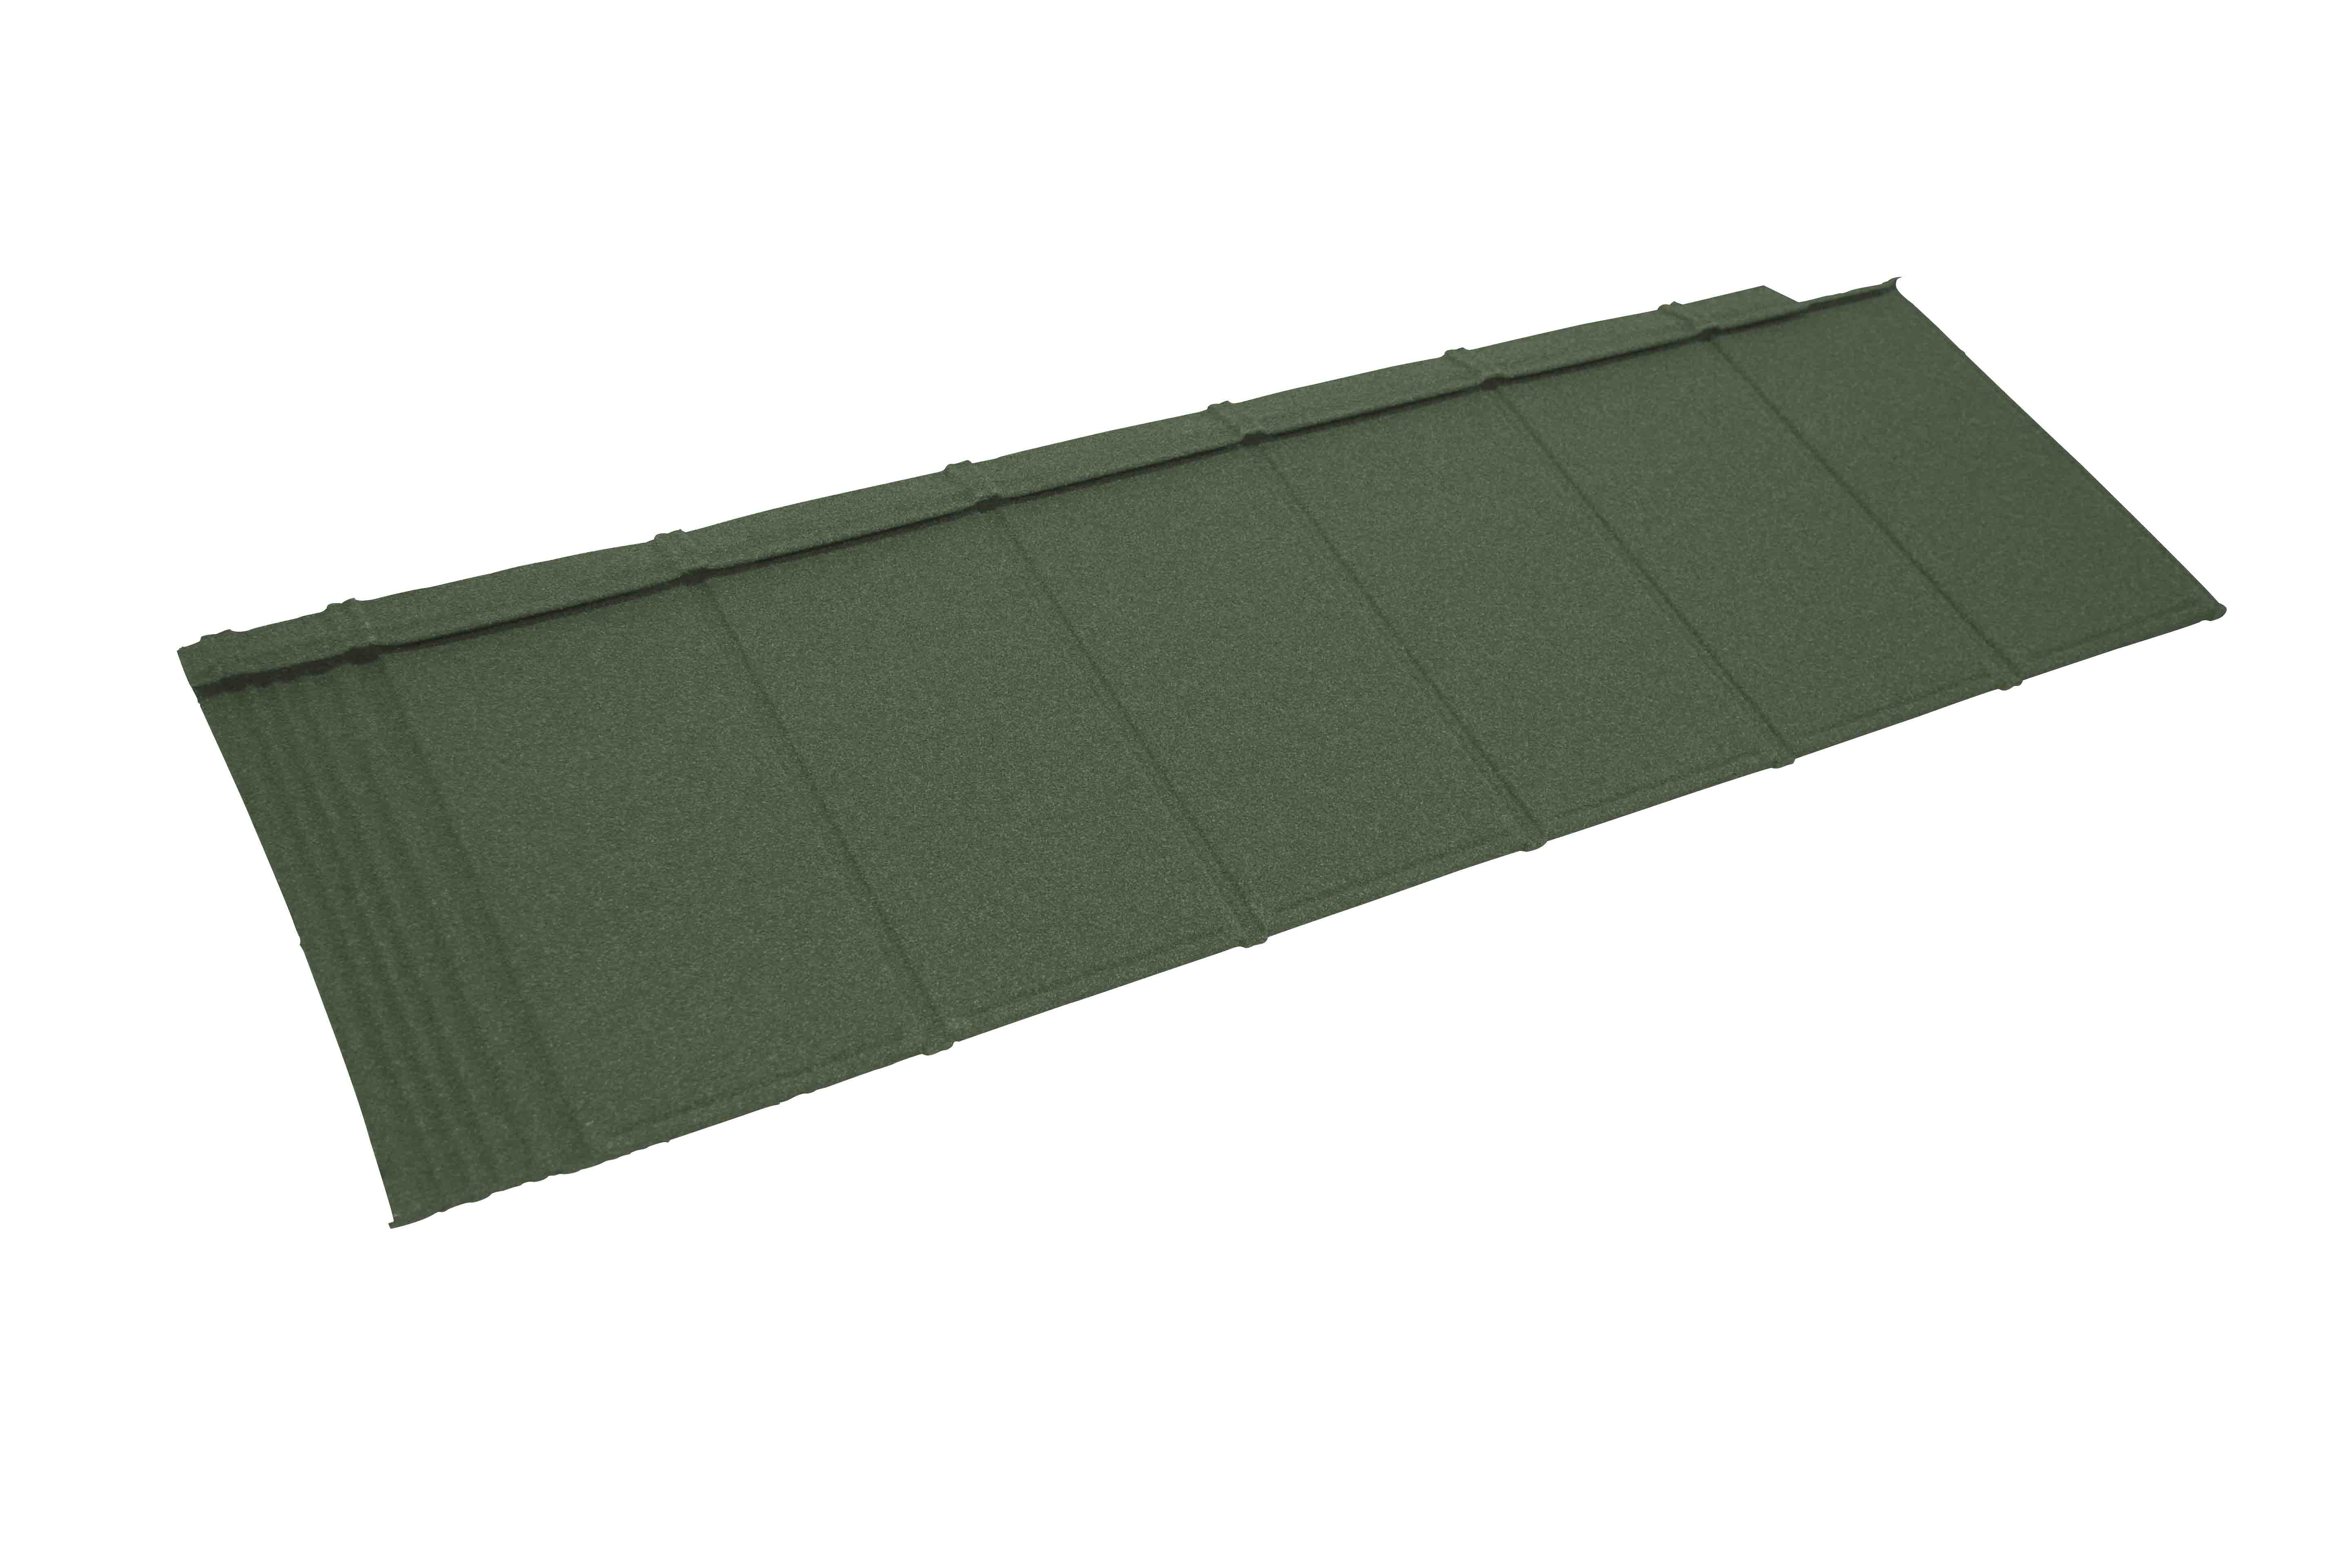 Metrotile iPanel Roofing and Cladding Tile in Green